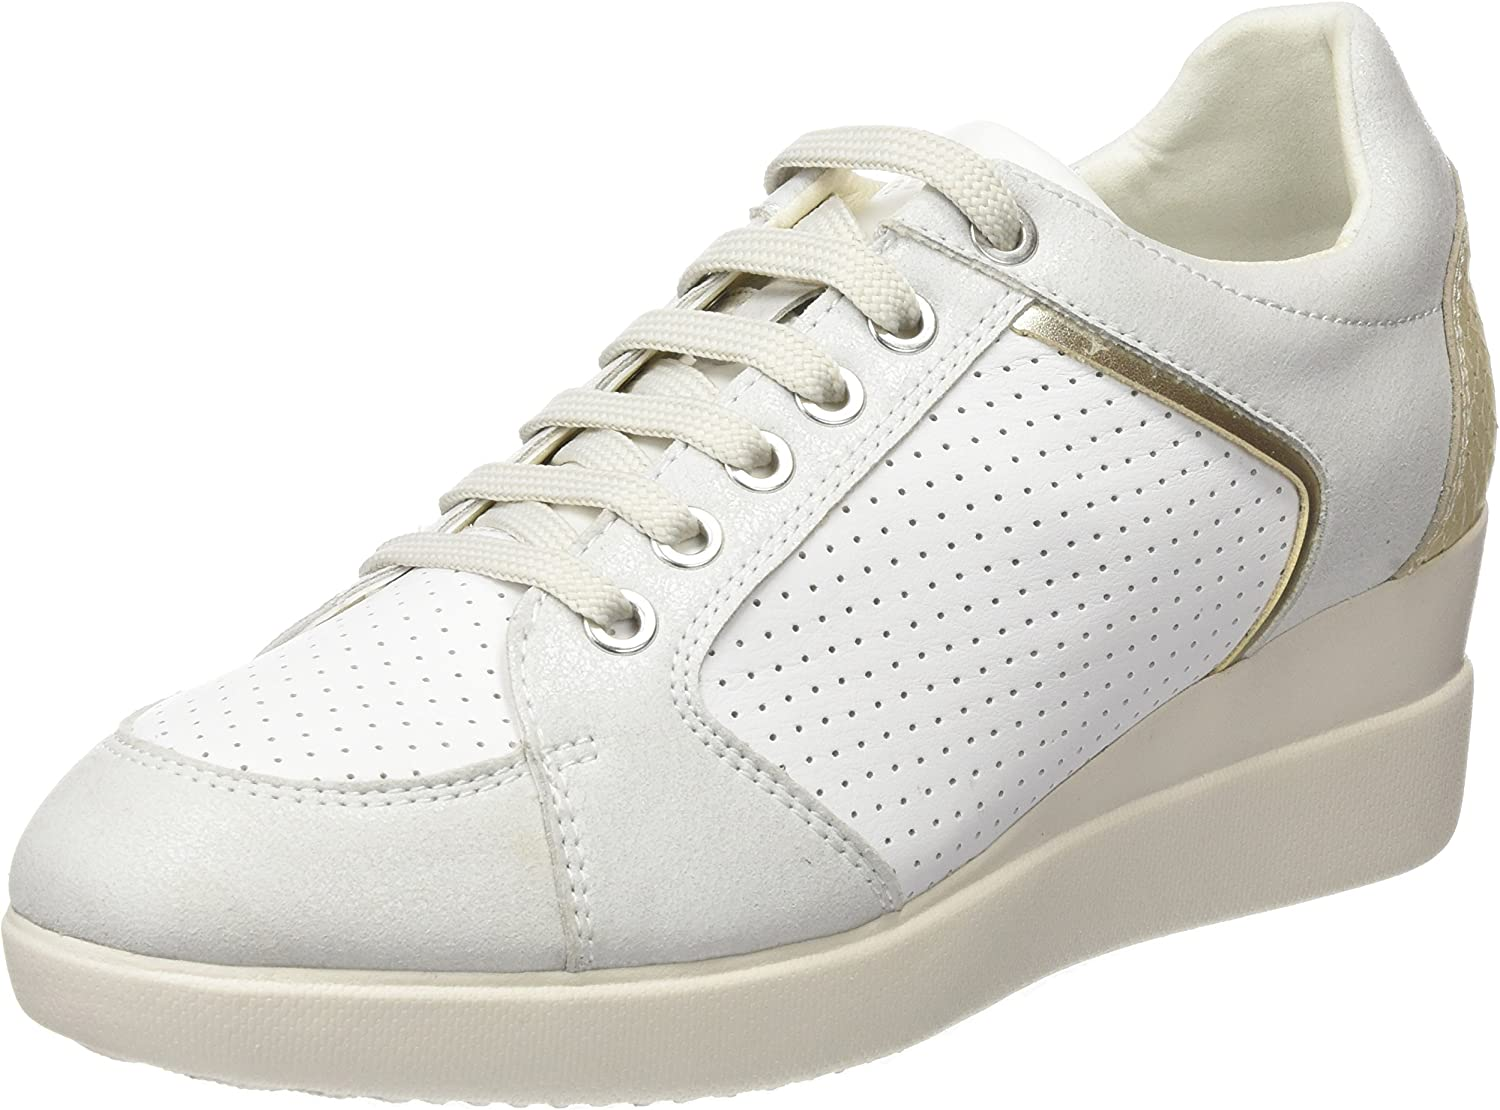 Geox Women's D Stardust B Trainers, White